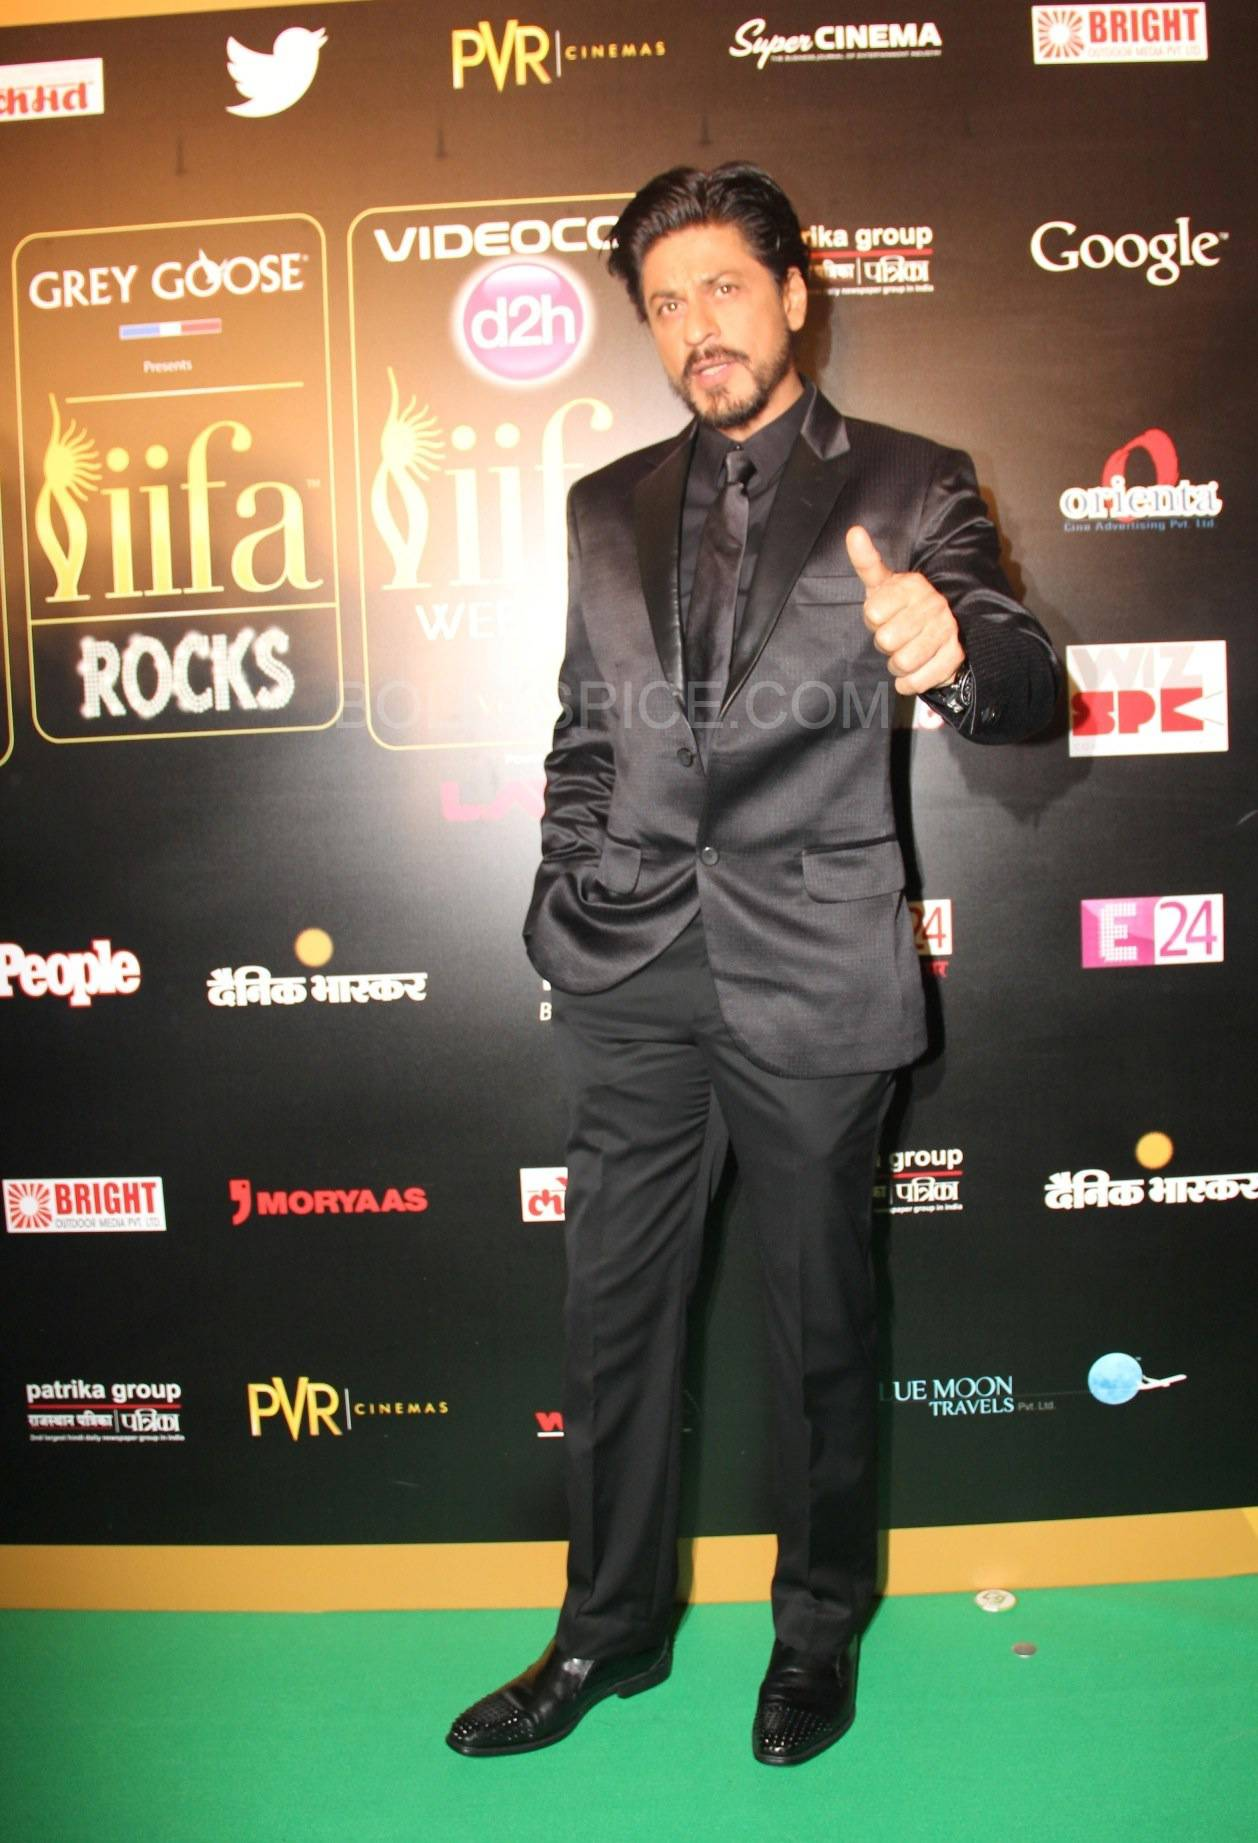 Shahrukh Khan at IIFA Rocks Green carpet More from IIFA Rocks including winners and more Green Carpet pics! Pics added!